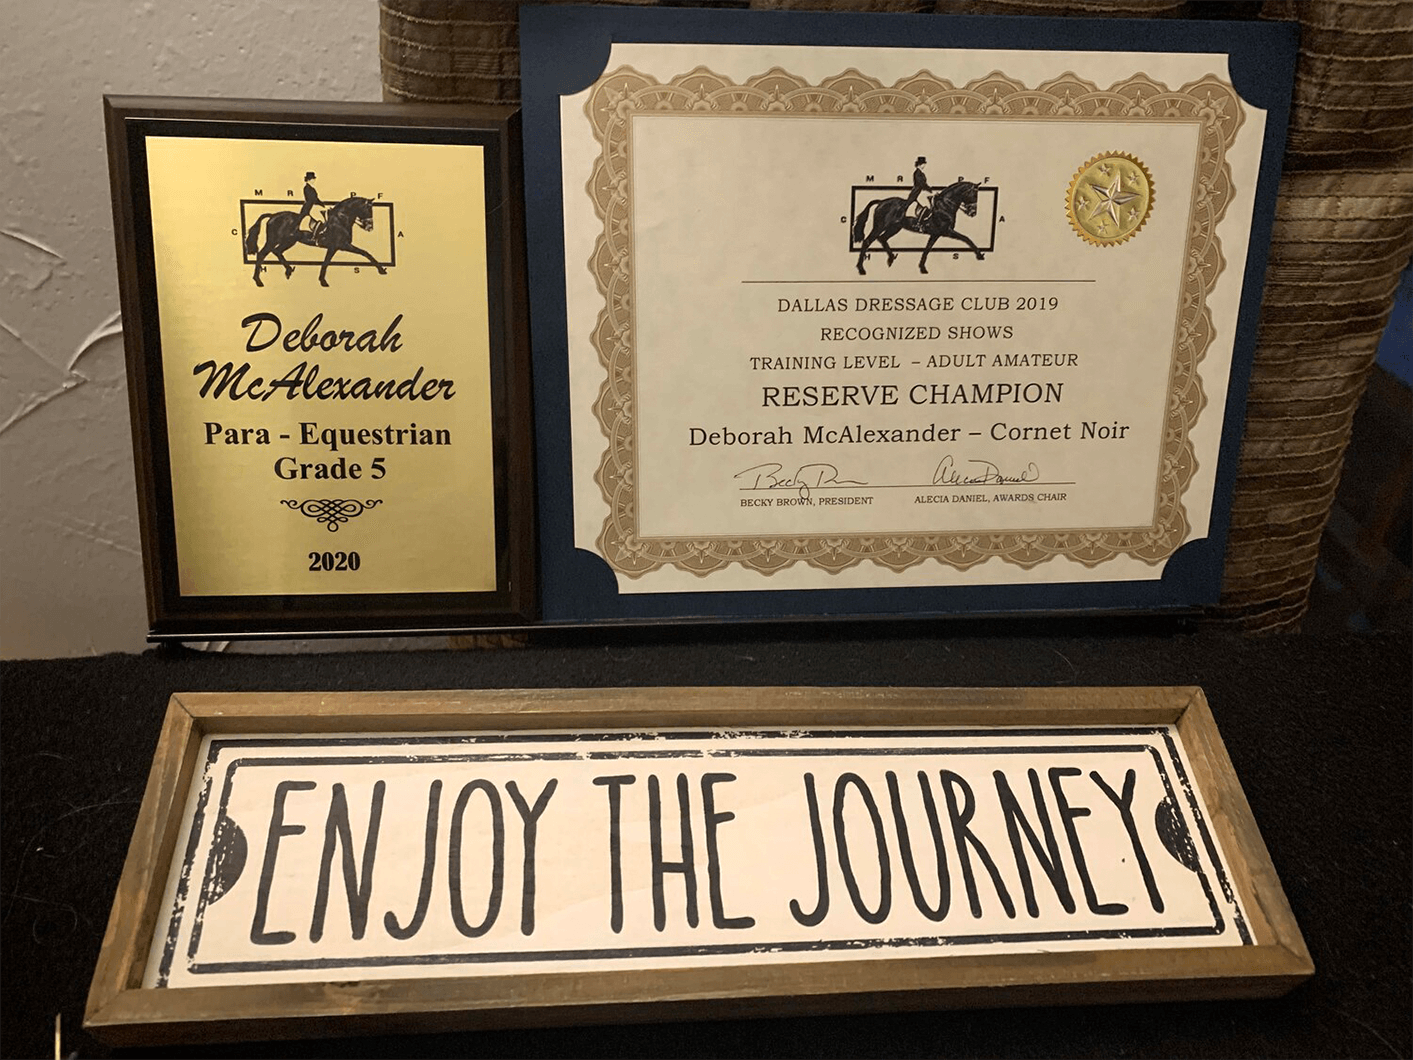 McAlexander displays her accolades from the Dallas Dressage Club Awards Banquet in January 2020.